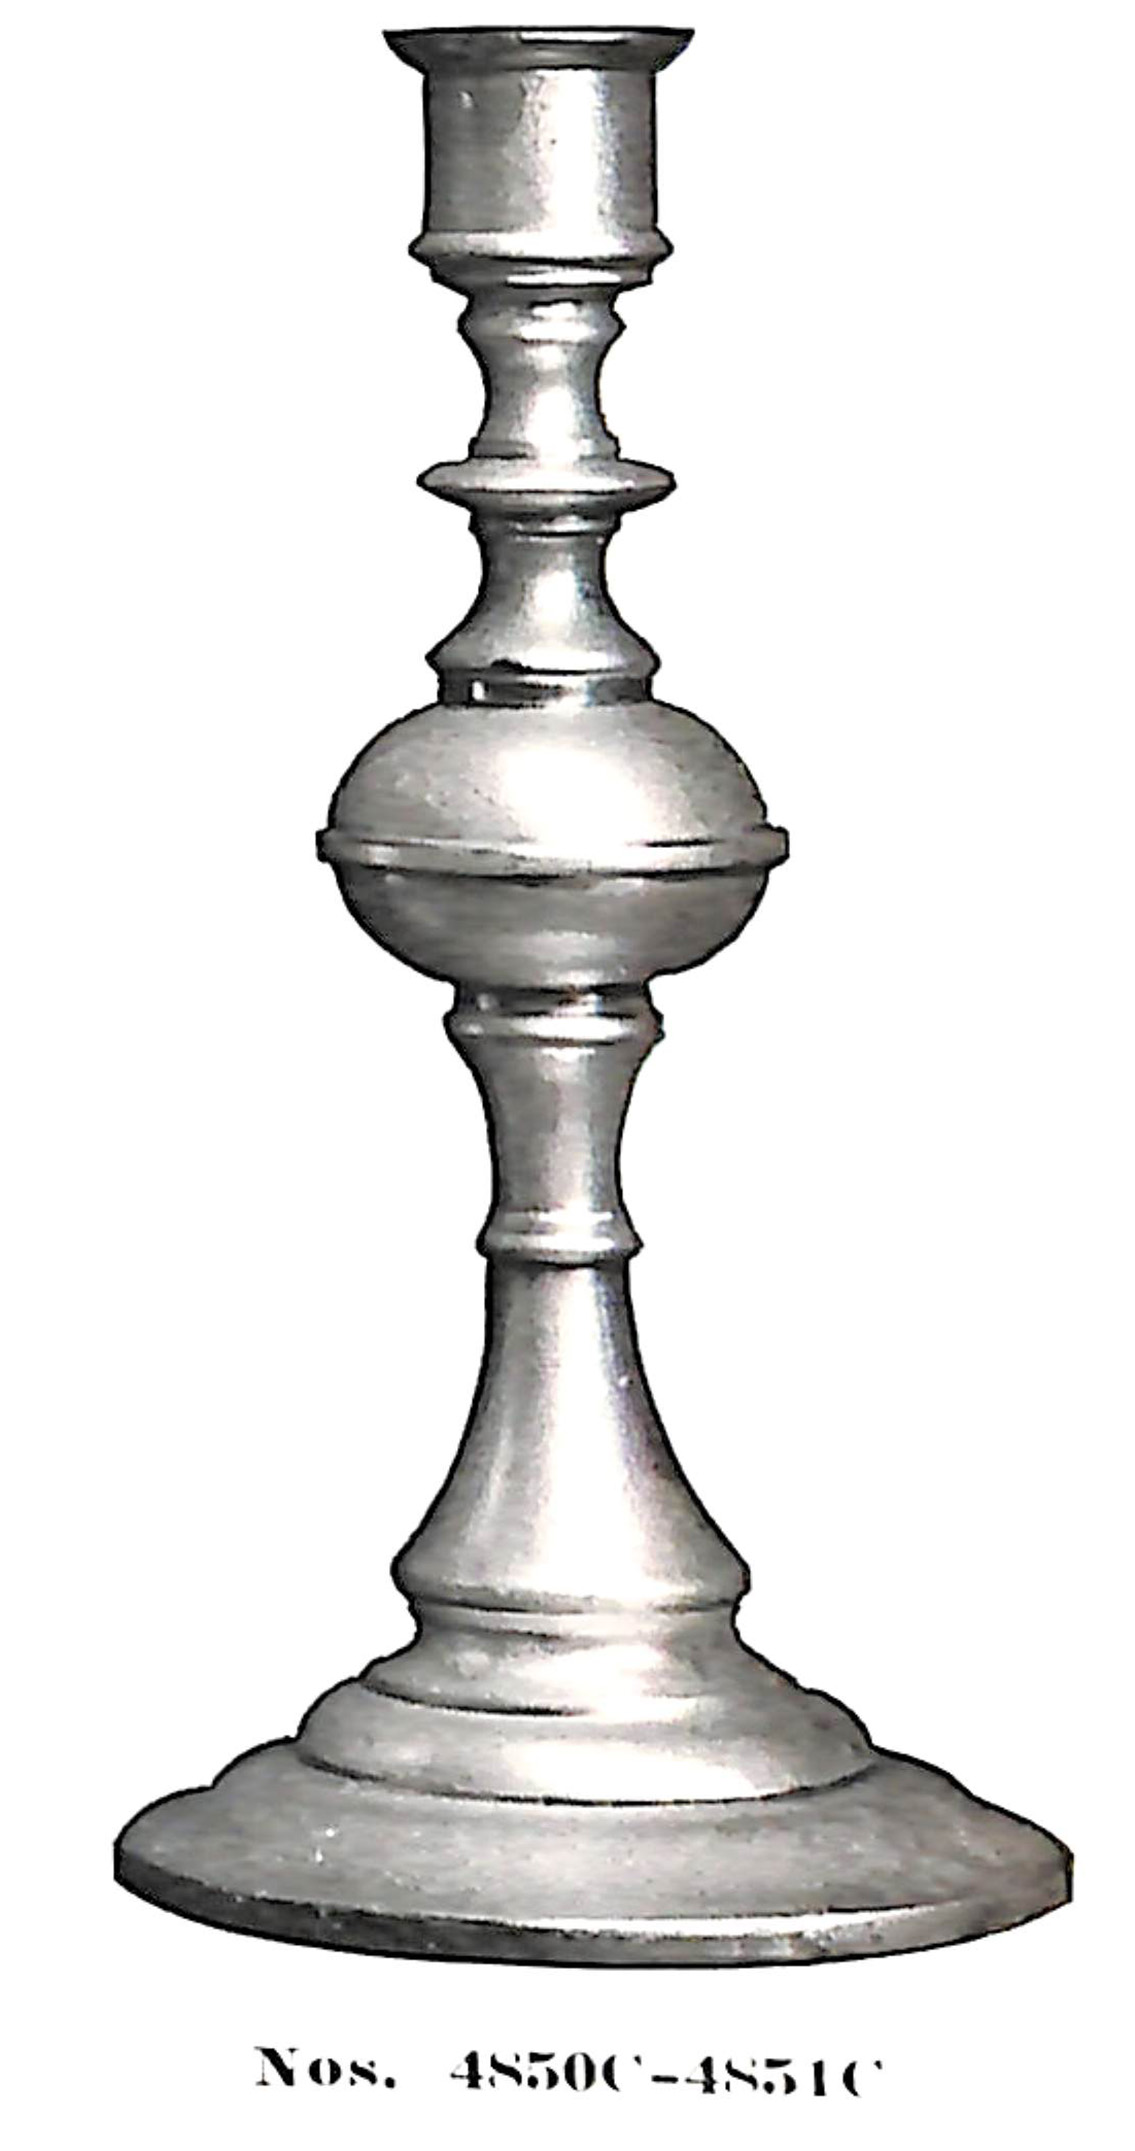 Candlesticks no. 4850C-4851C